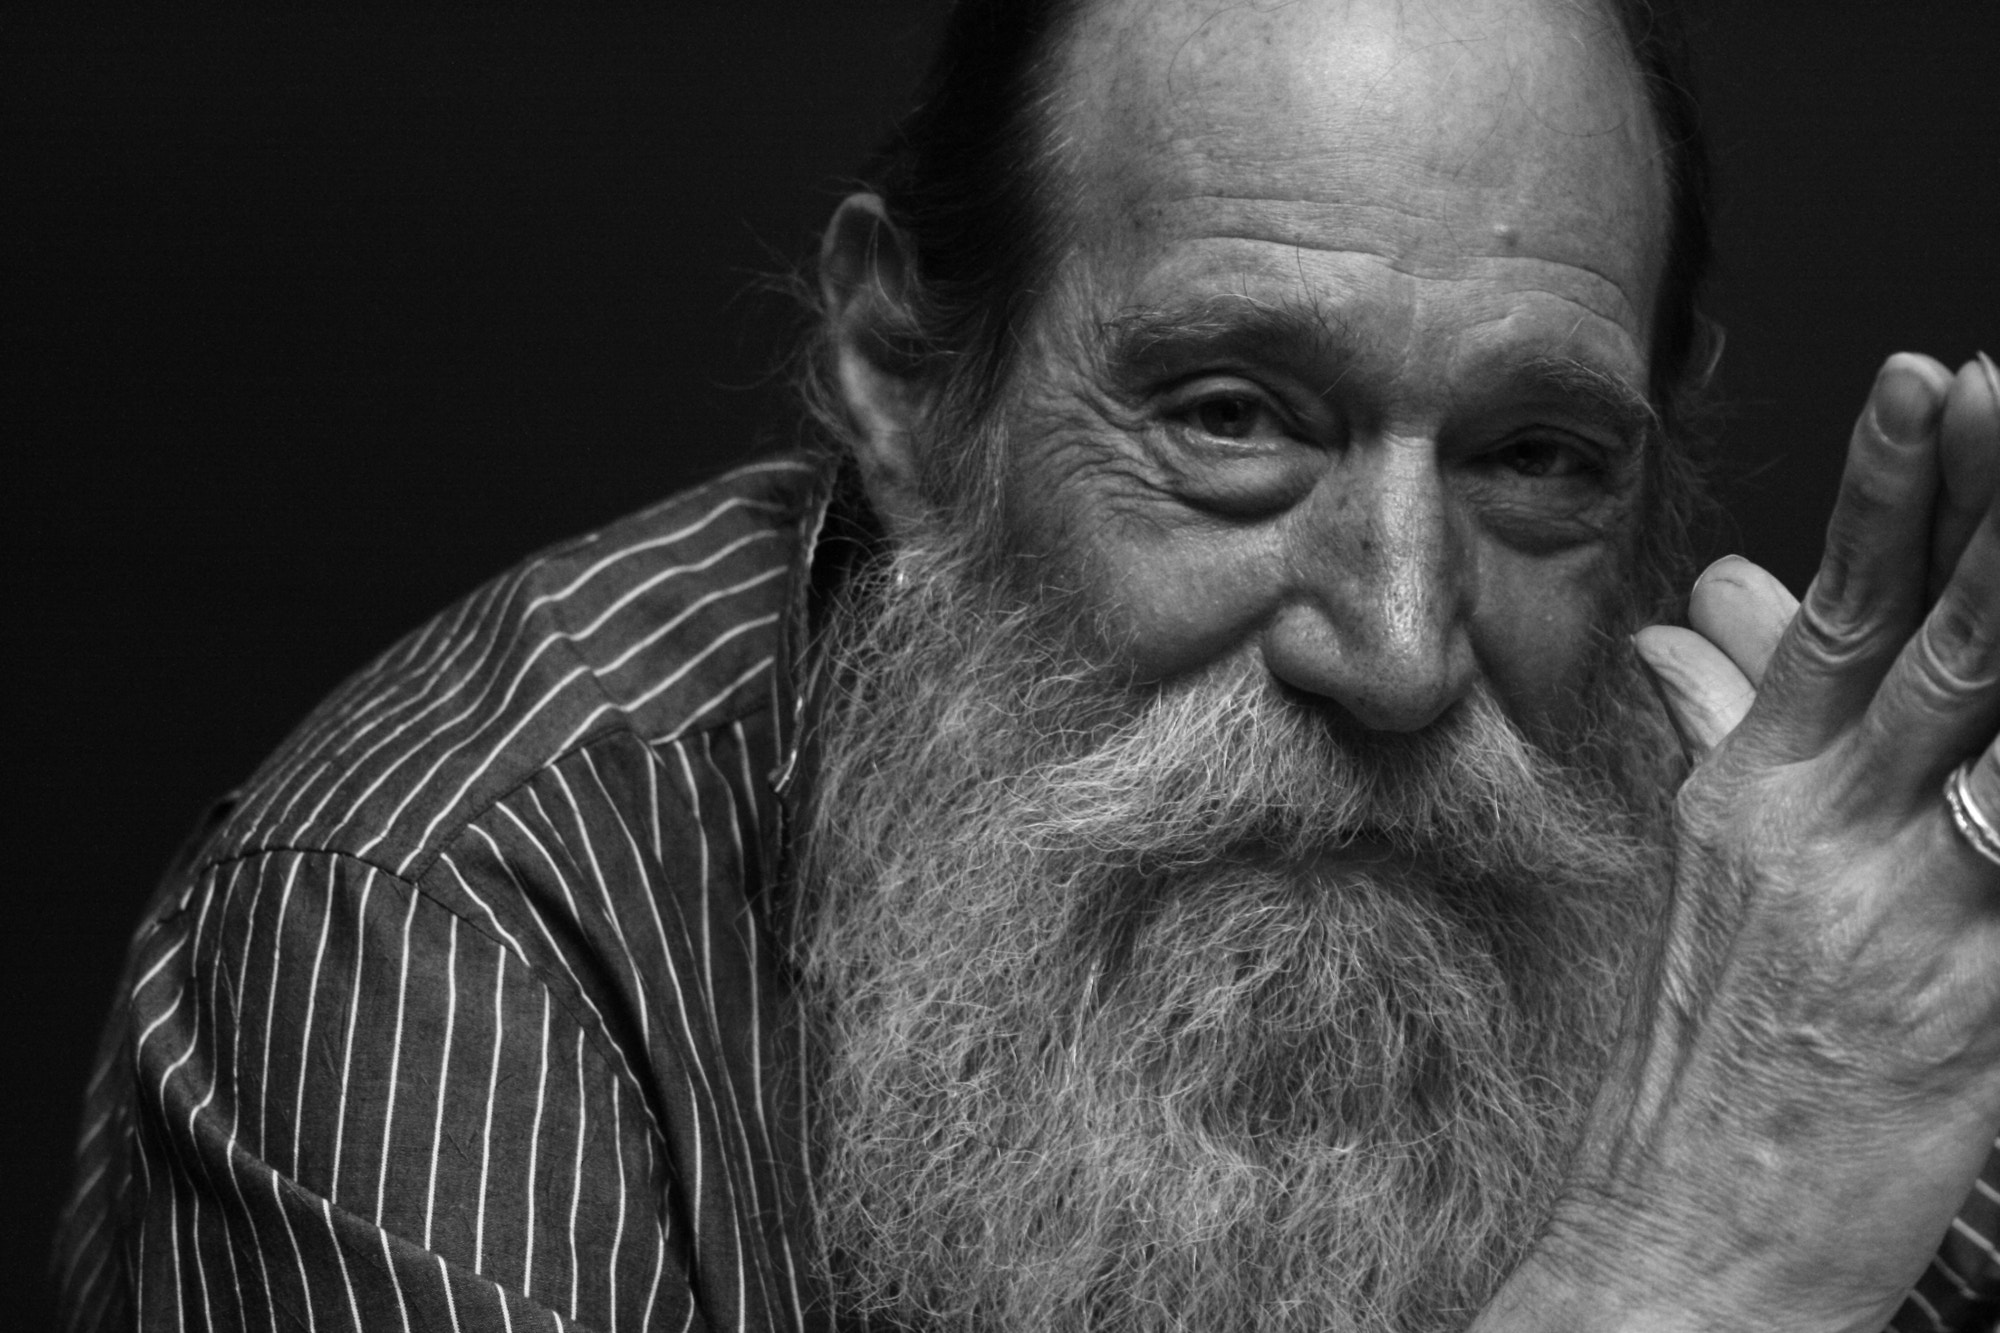 Black and white portrait of the artist Lawrence Weiner